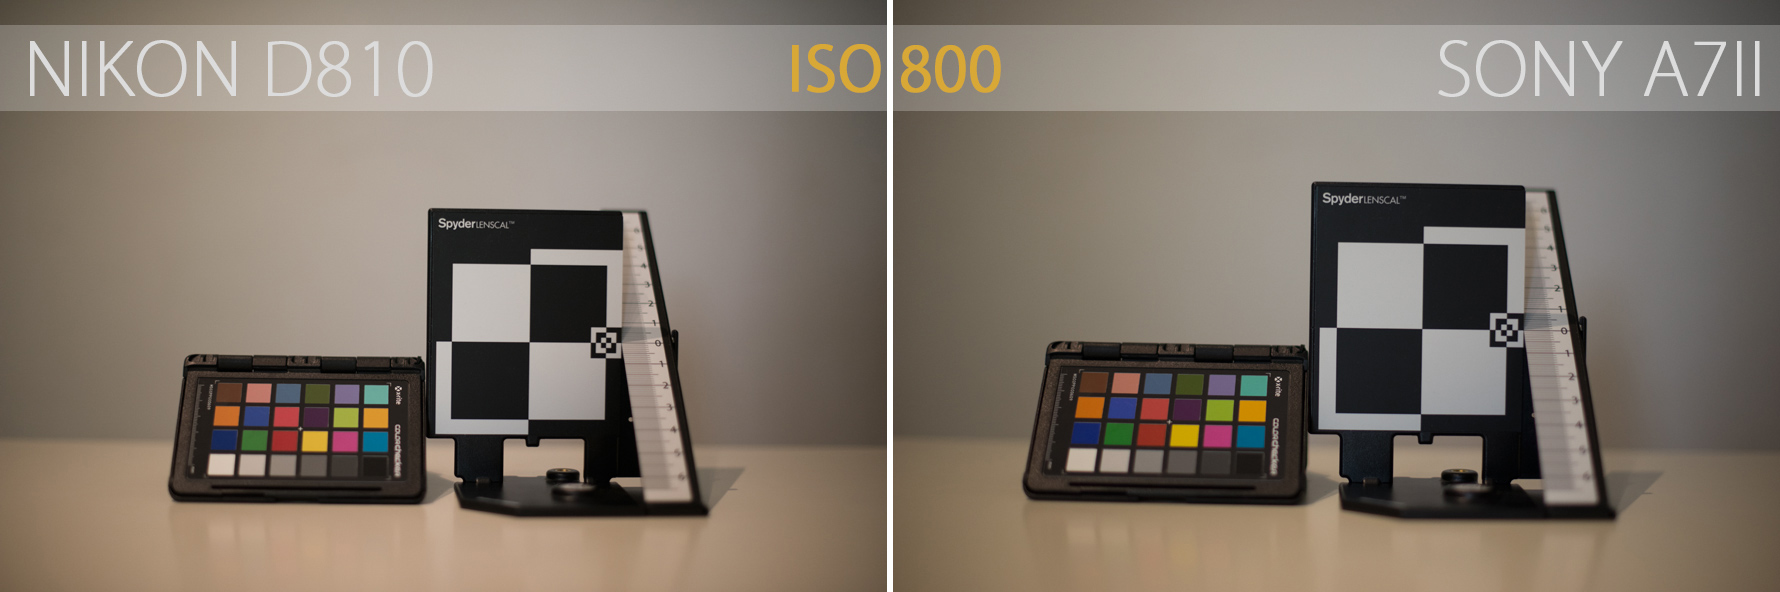 comparison between Nikon D810 and Sony a7II to ISO 800